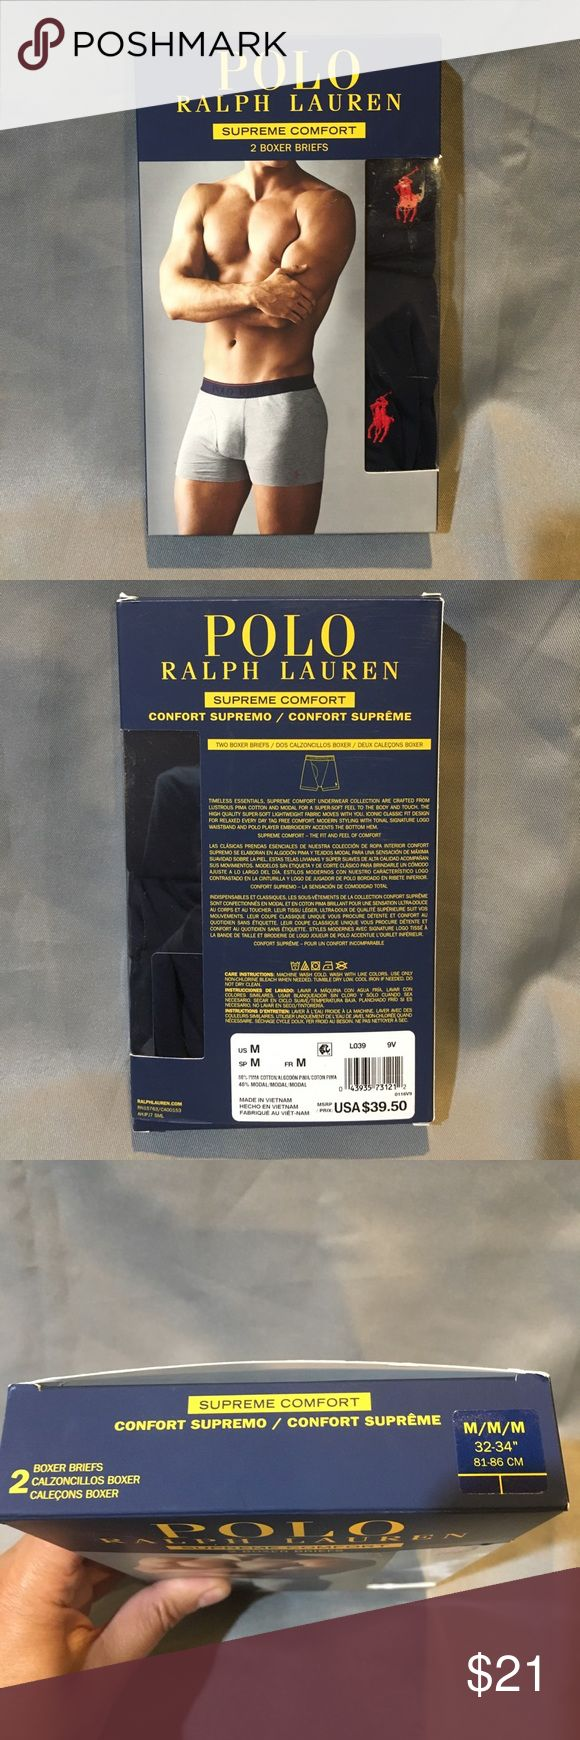 NWT Polo Ralph Lauren Navy  2 Pair Boxer Briefs NWT Polo Ralph Lauren Navy 2 Pair Boxer Briefs. Comfort Supreme.  Available in black size medium and gray size large. Polo by Ralph Lauren Underwear & Socks Boxer Briefs